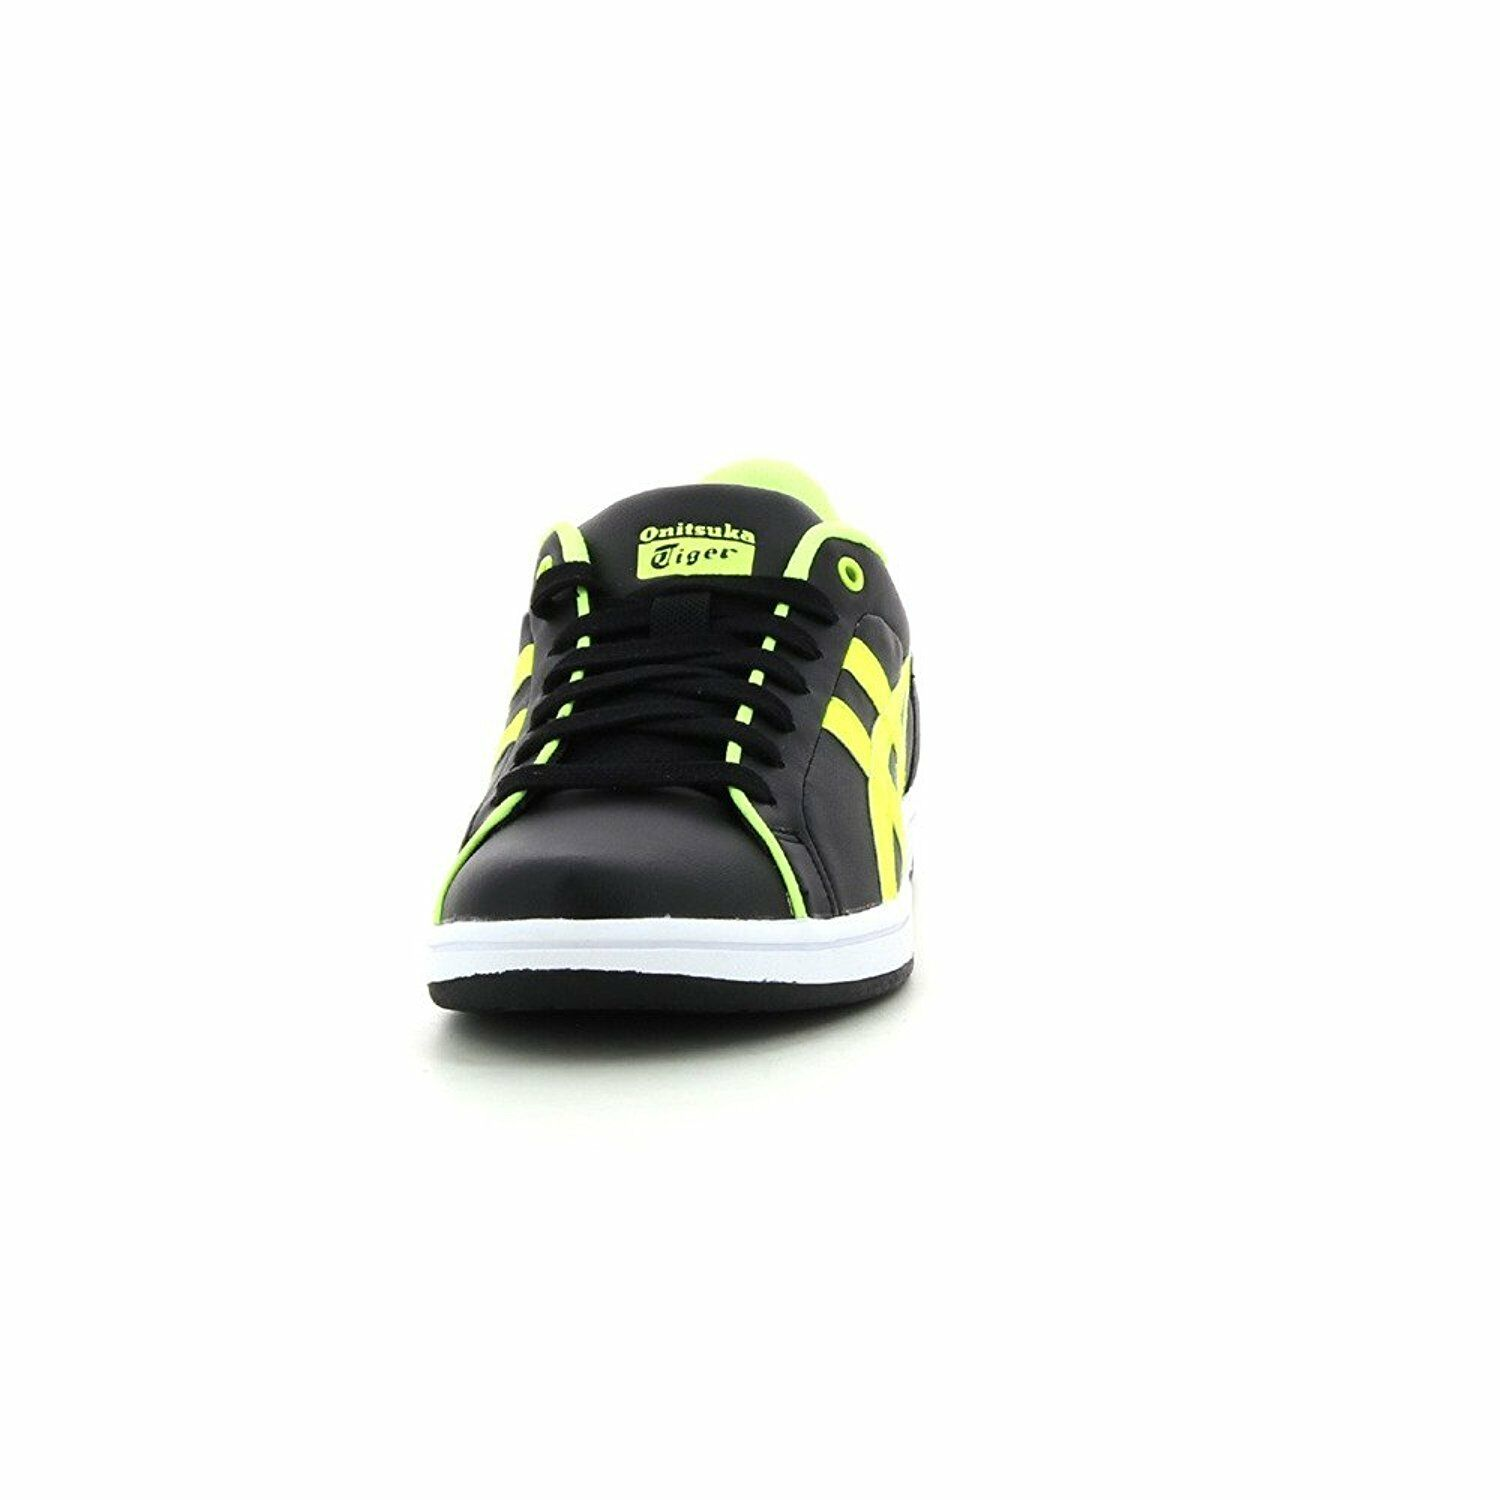 BASKET ONITSUKA TIGER LARALLY GS  TAILLE: BY ASICS NOIR/JAUNE FLUO TAILLE:  39 : (EU) da6875